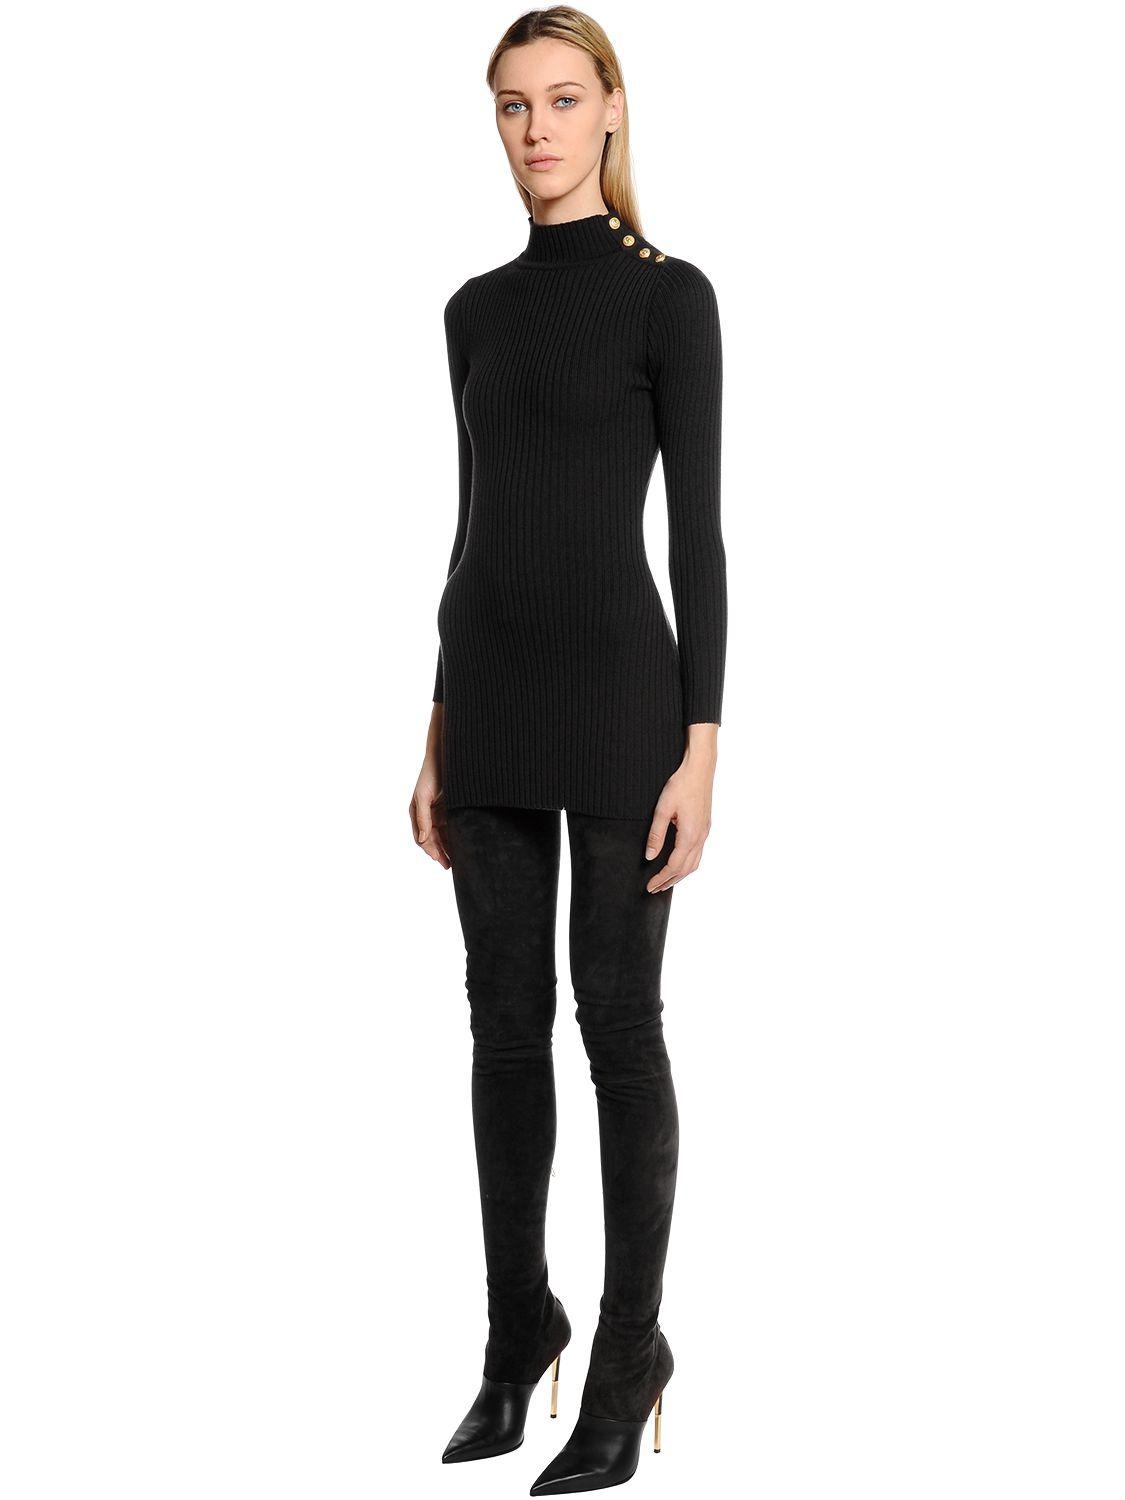 d63ad4f540e1 Balmain Turtleneck Sweater Dress W  Gold Buttons in Black - Lyst